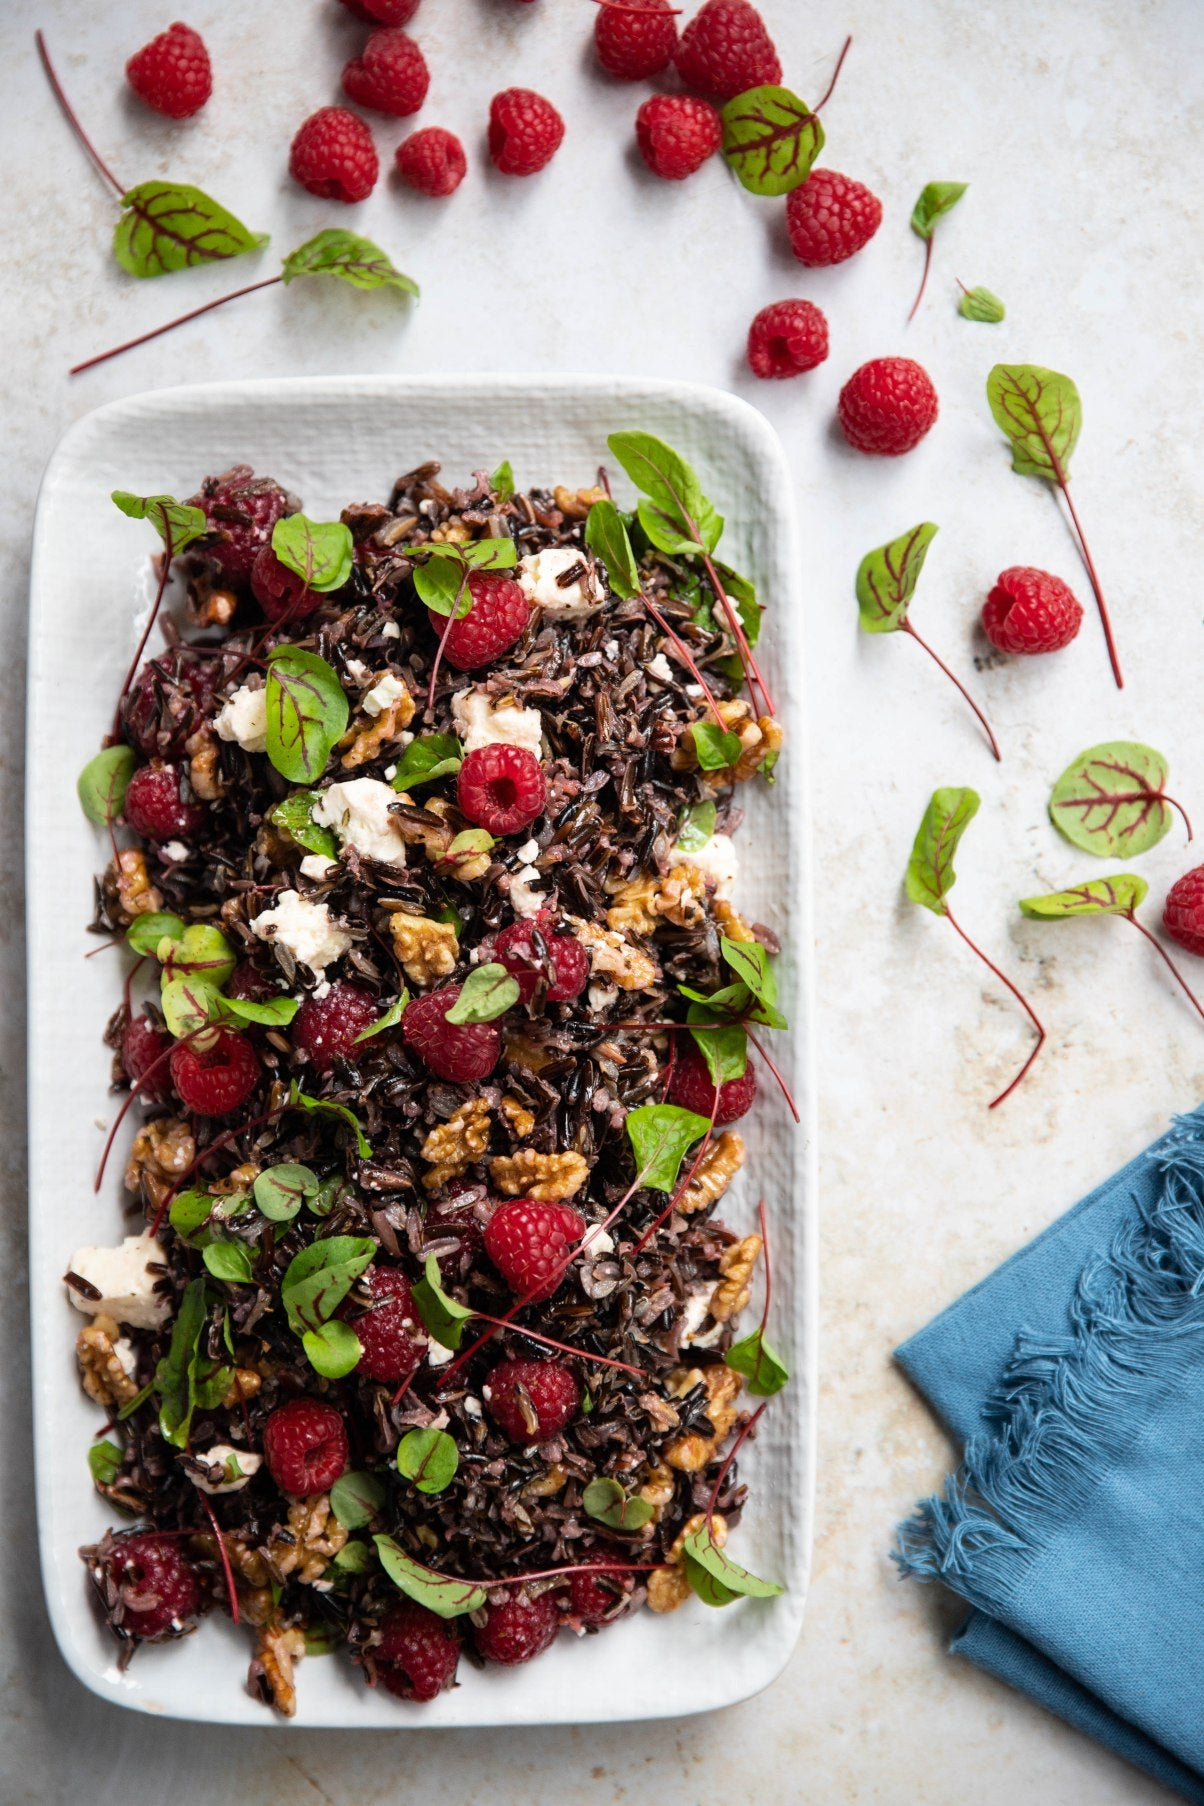 Wild Rice and Raspberry Salad with Toasted Walnuts, Feta and Raspberry Dressing | Harris Farm Markets